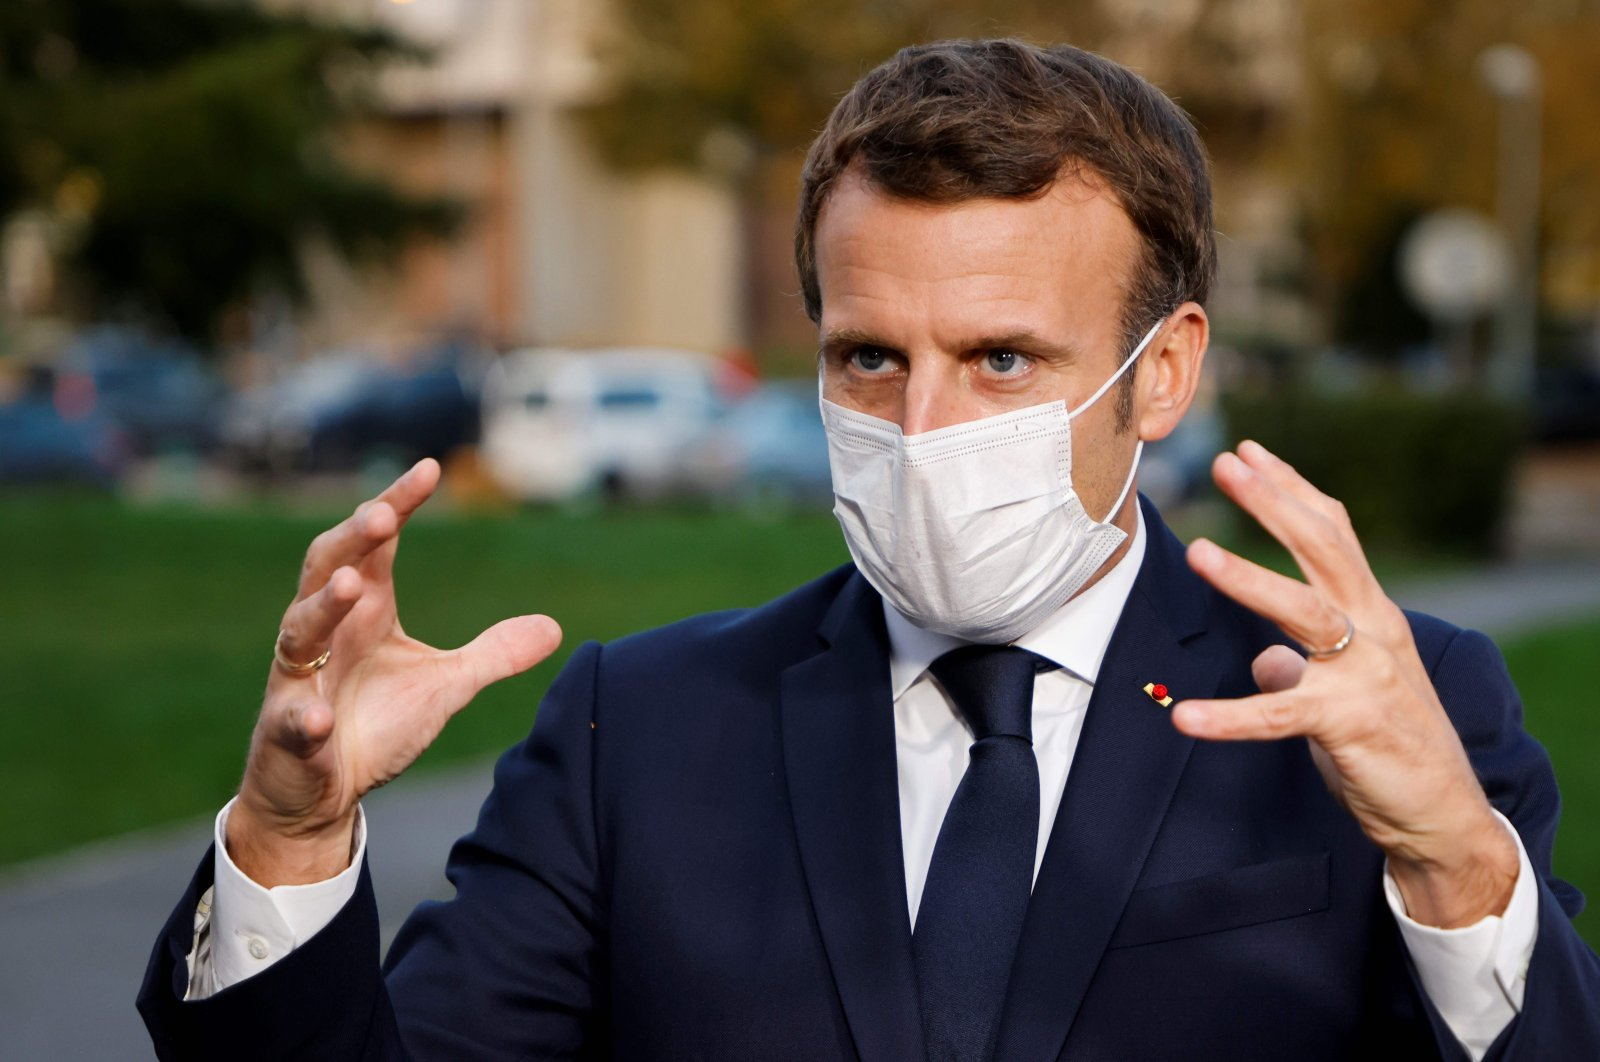 French President Emmanuel Macron speaks to the press after chairing a meeting with the medical staff of the Rene Dubos hospital center in Pontoise, in the Val d'Oise, France, Oct. 23, 2020. (AFP Photo)